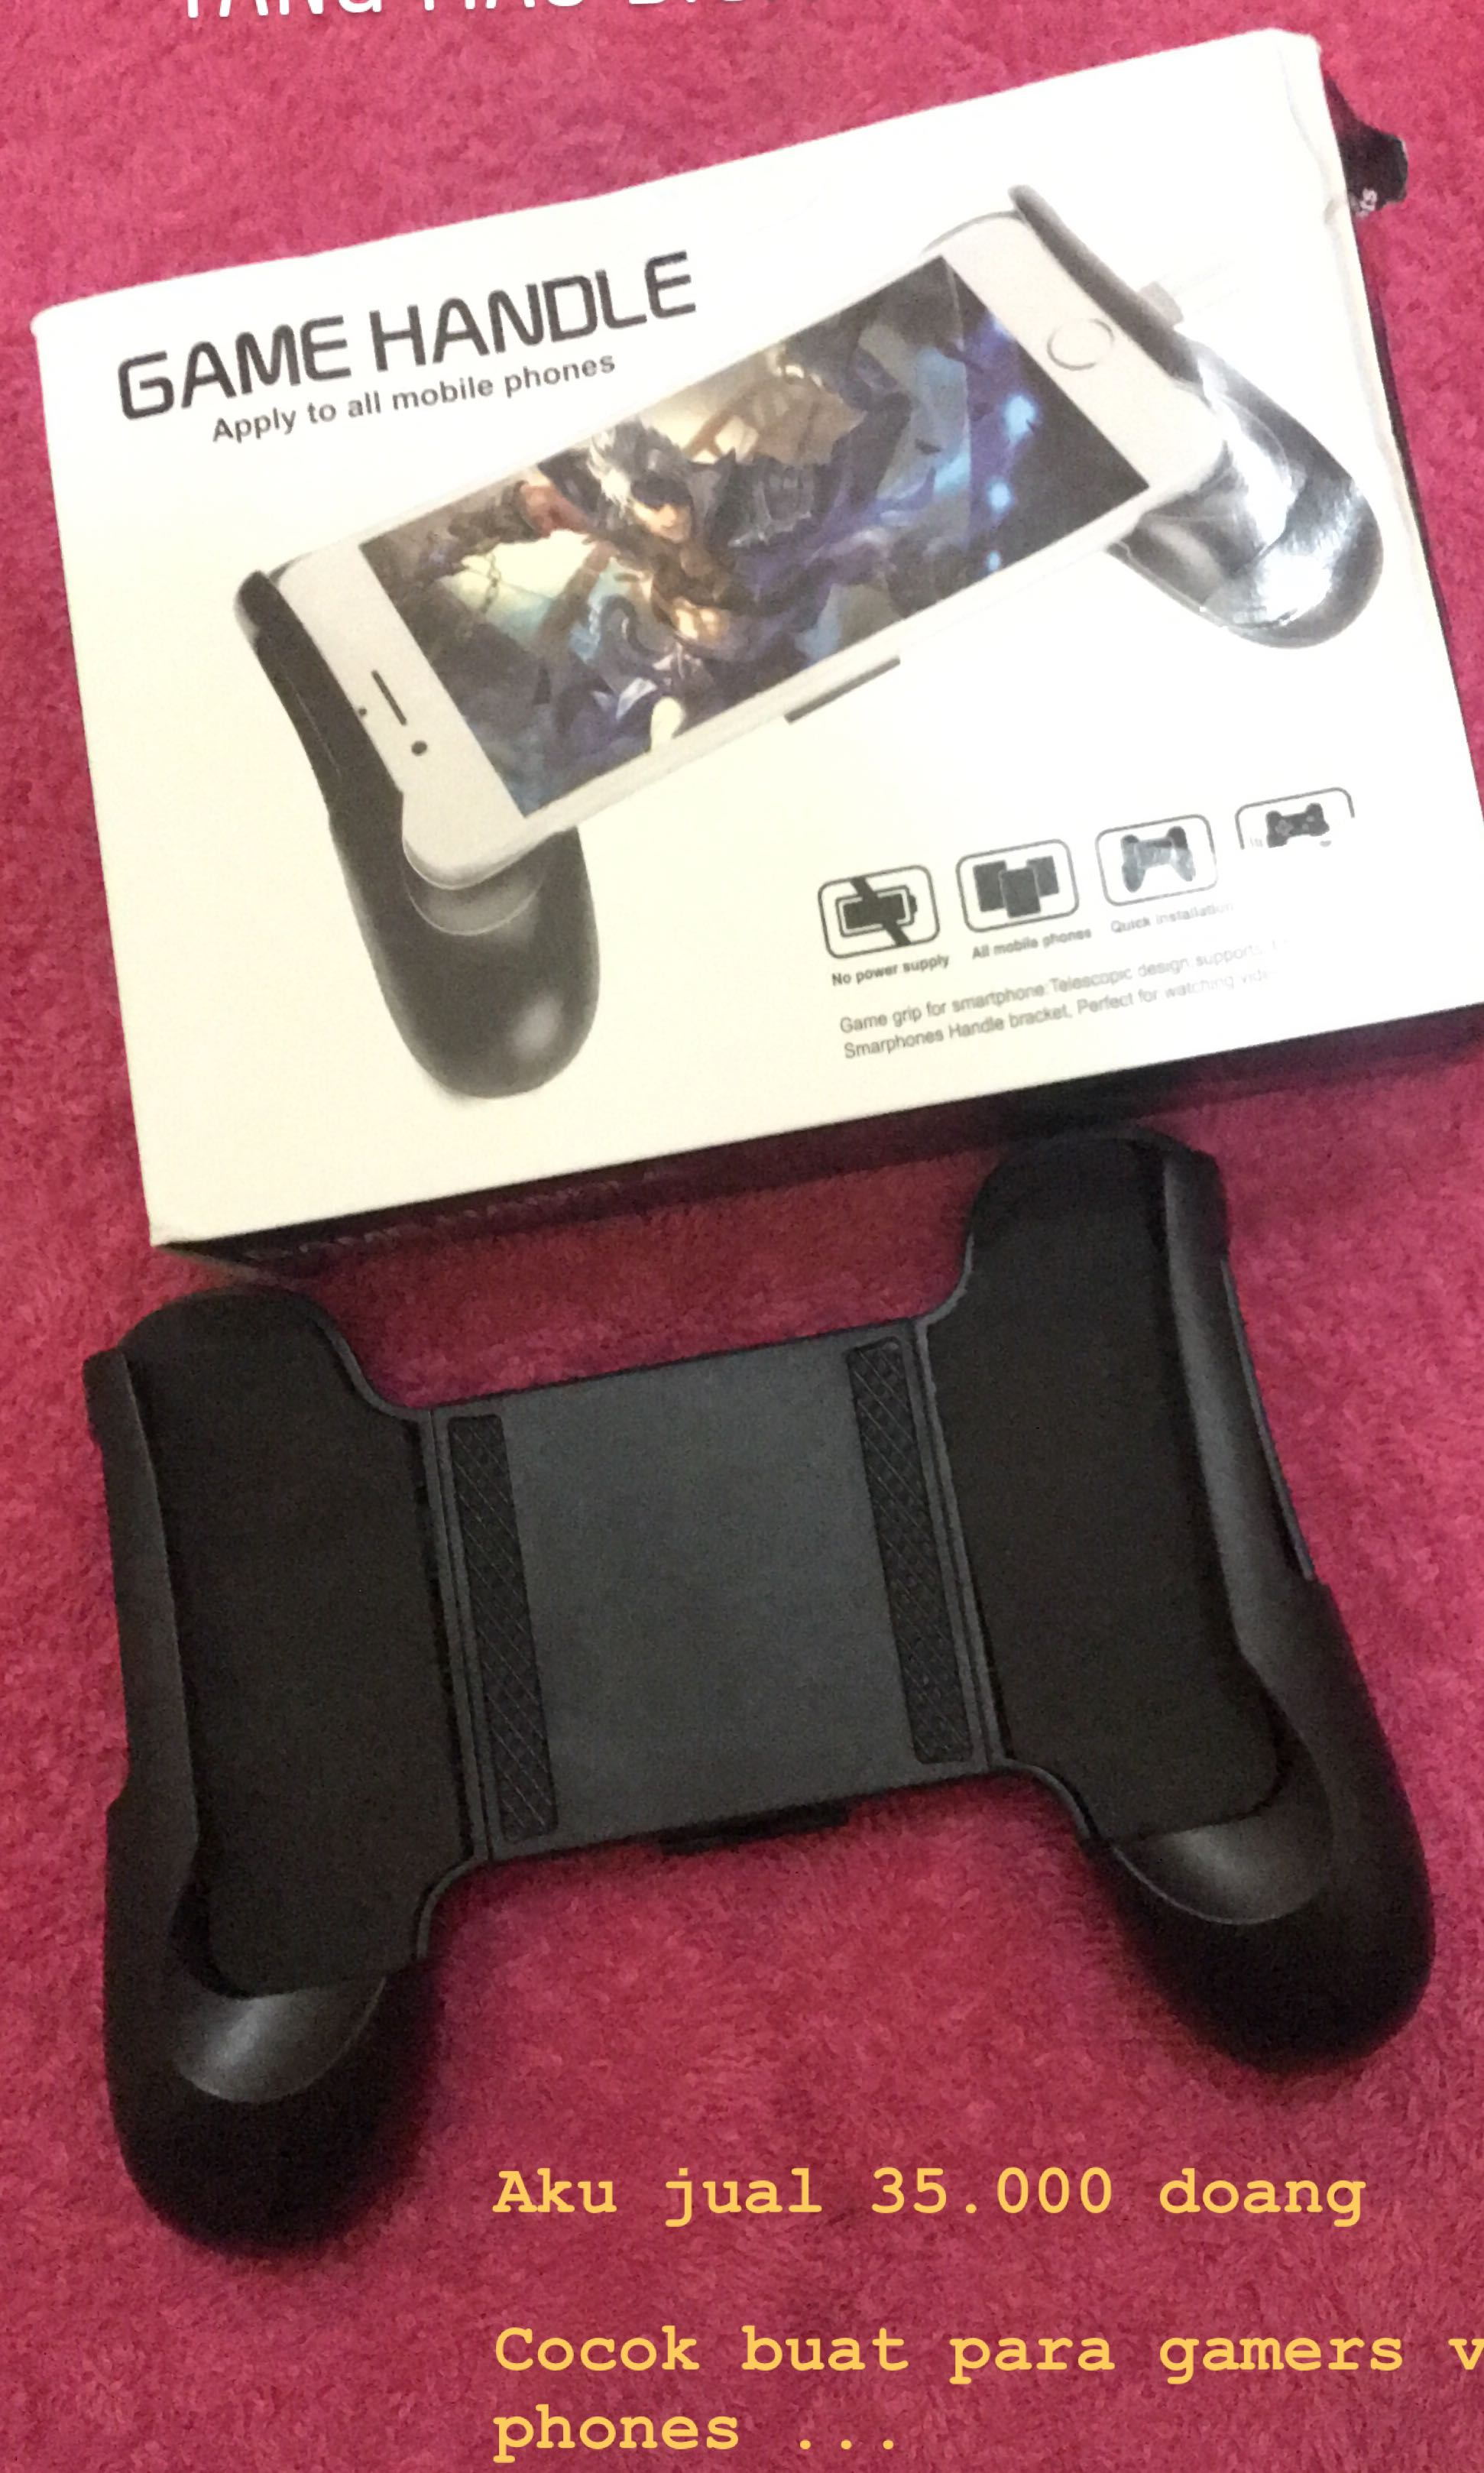 Game Handle Gamepad Stick Mobile Video Gaming Steam Wallet Idr 450000 Accessories On Carousell